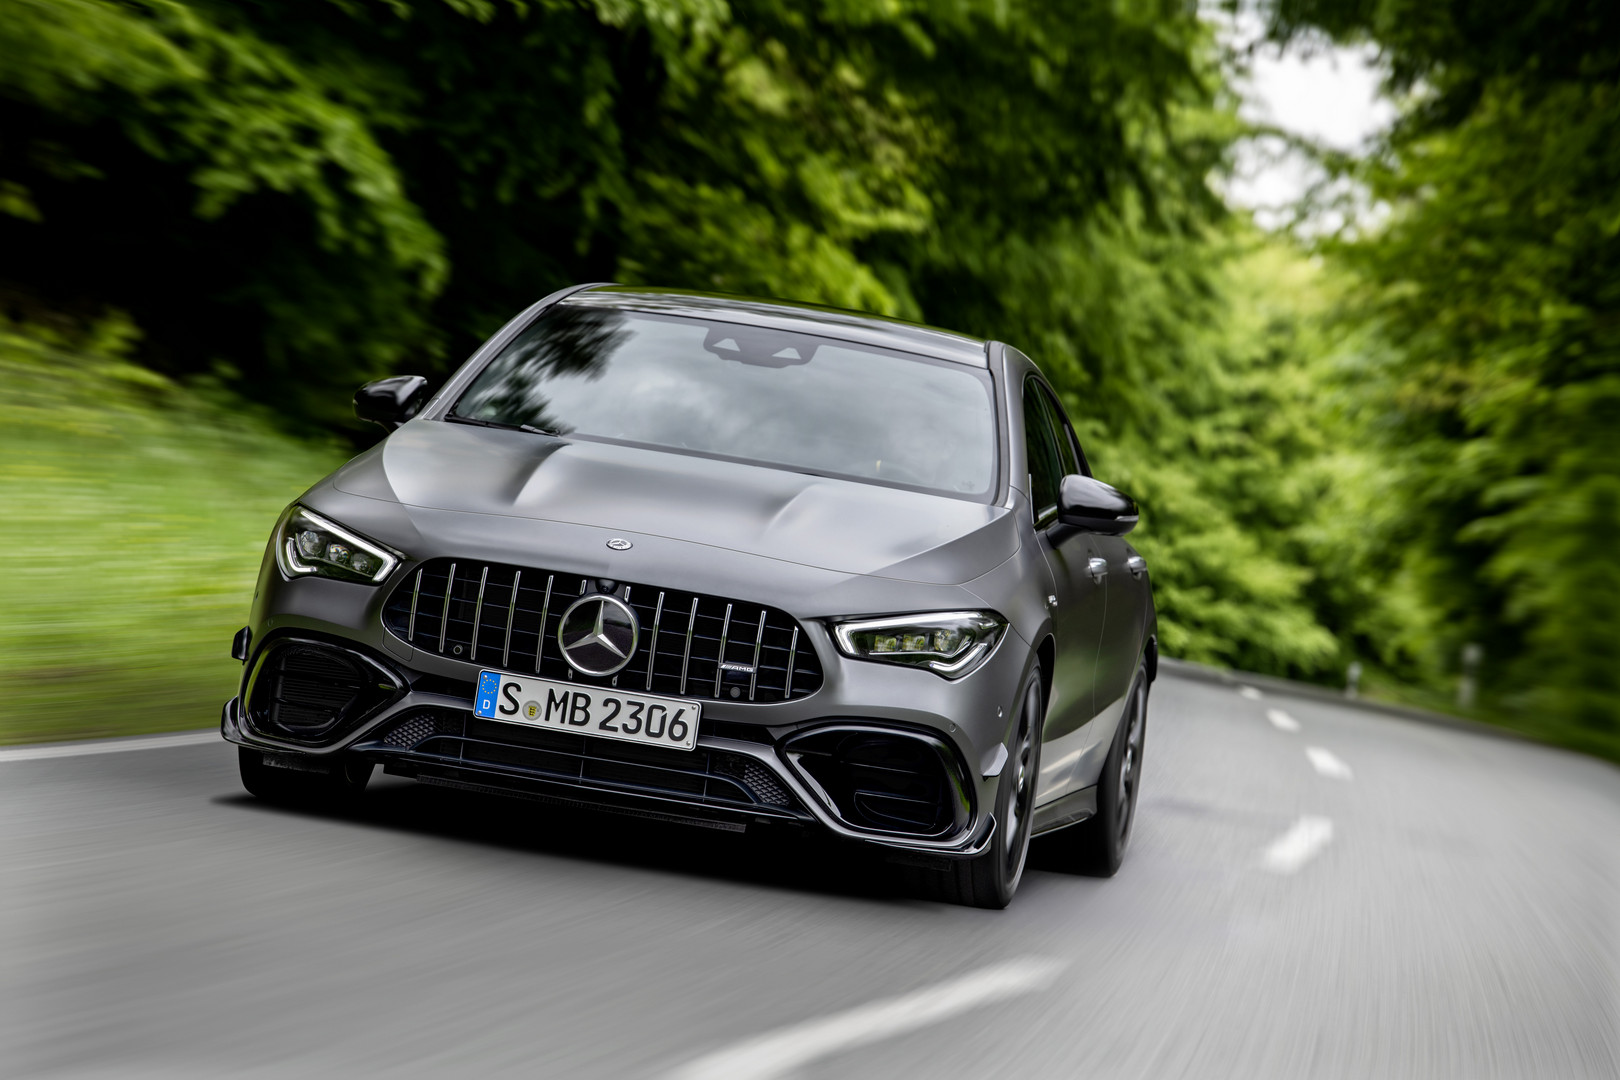 2020 Mercedes-AMG CLA 45 S Front Grille